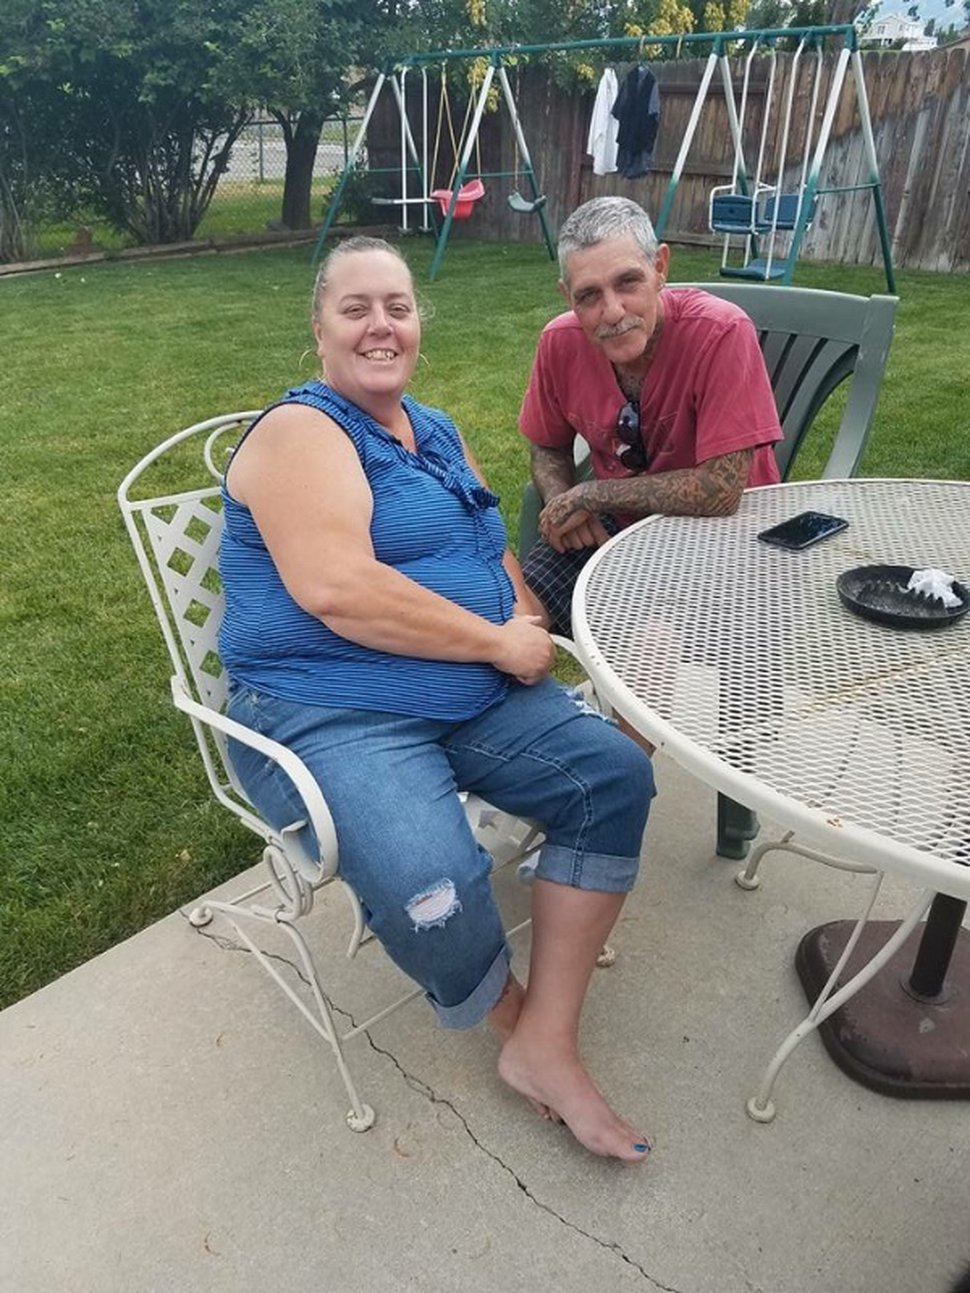 (Courtesy GoFundMe/Maile Latu) Lloyd Everett Pace and his fiancee, Tami Lynn Woodard, were killed in a car crash that followed a drive-by shooting in Kearns on Tuesday night. Police said as four suspects sped away from the scene of the shooting in a pickup truck, they struck the car with Pace and Woodard inside.